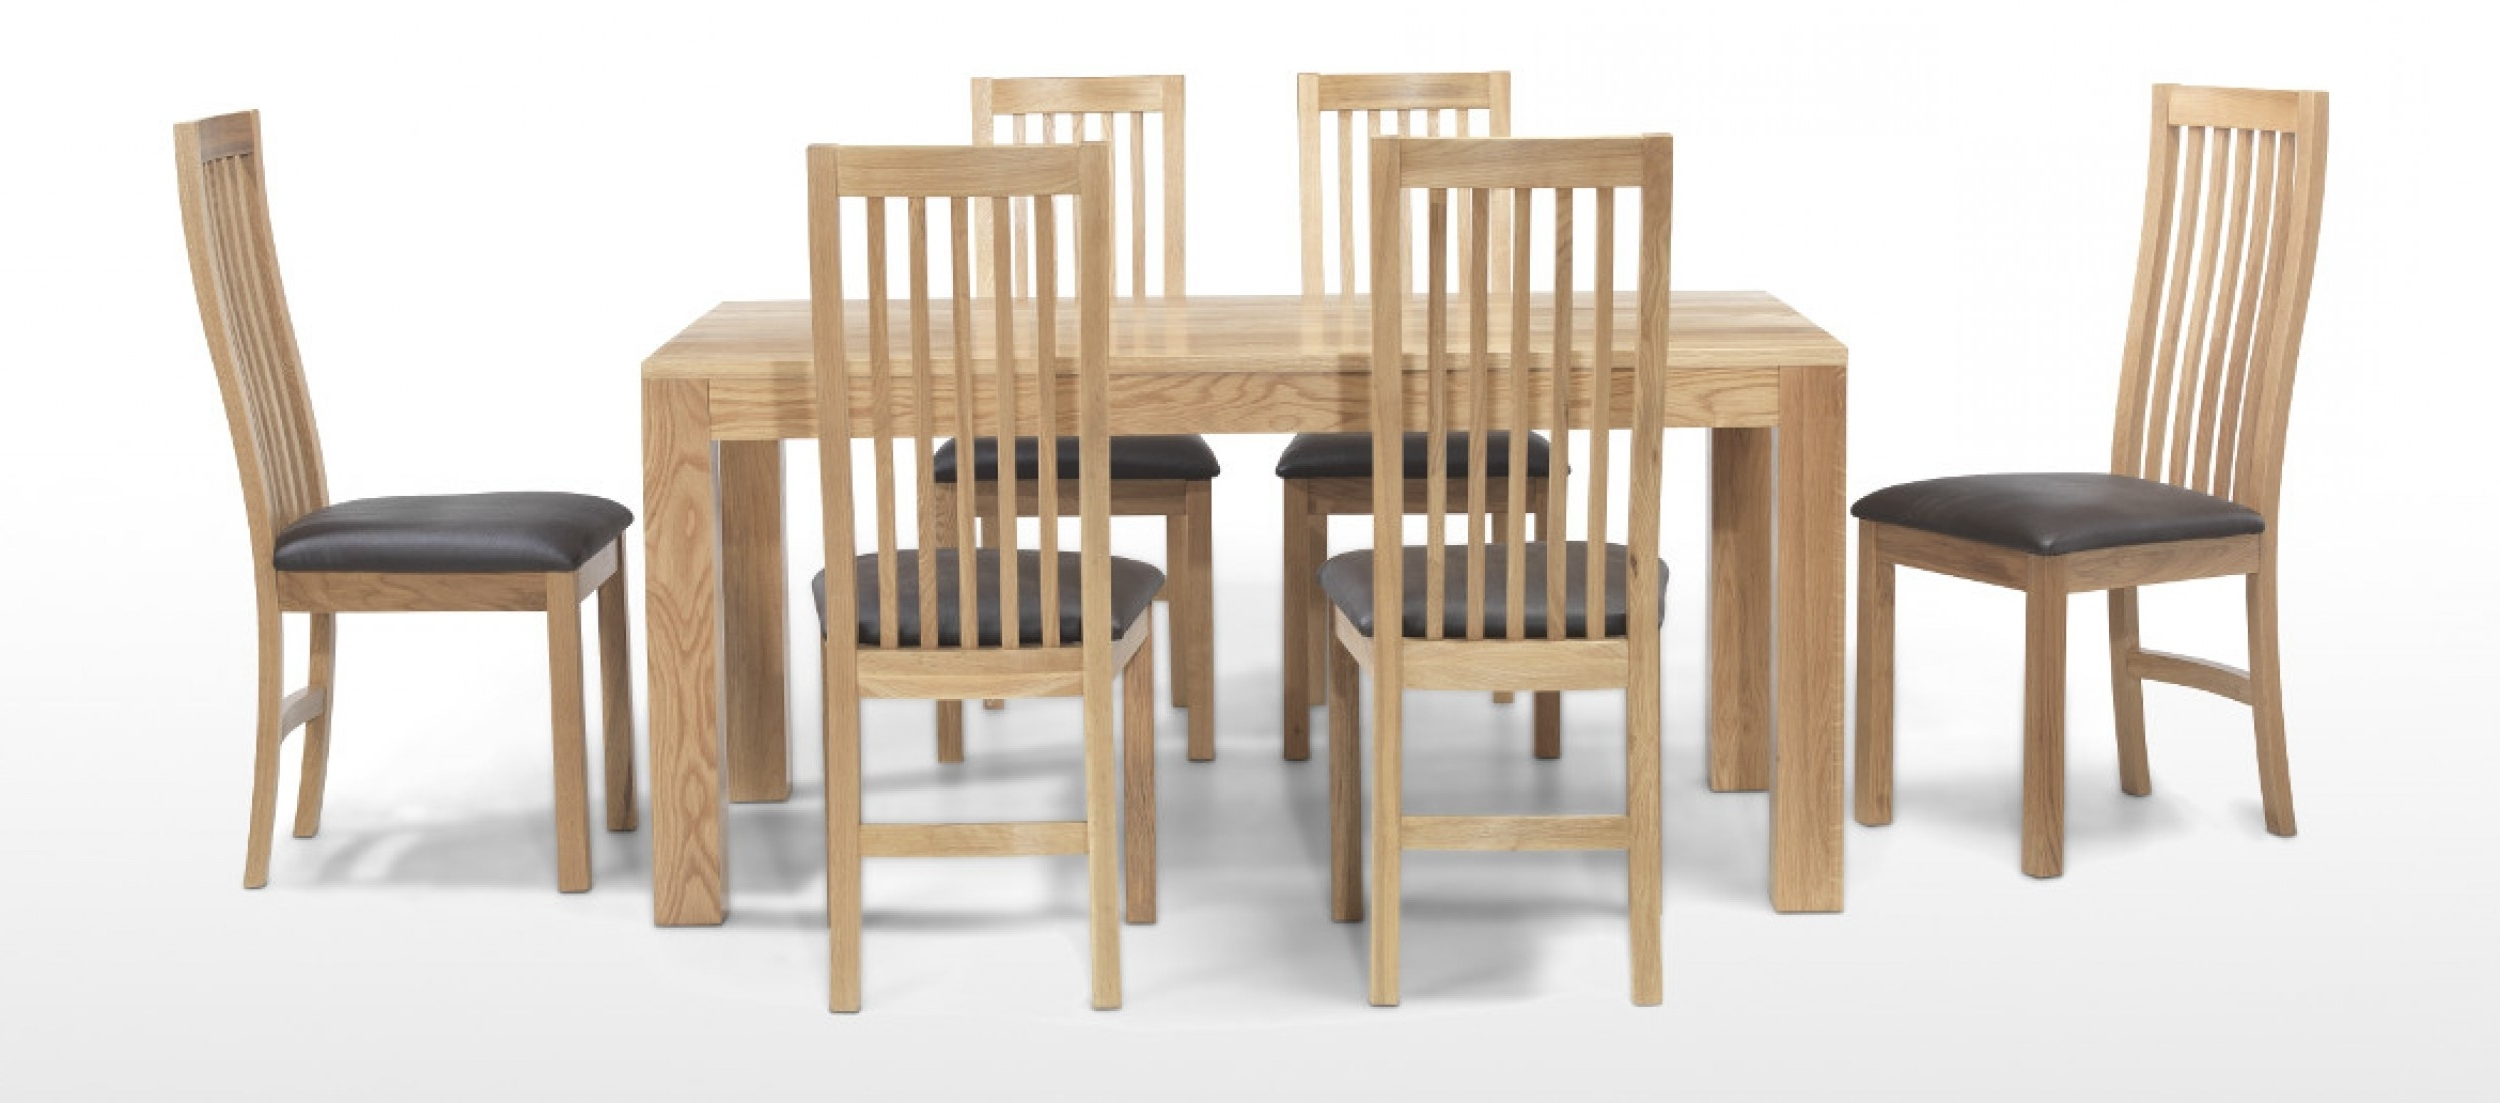 Quercus Living for Most Popular 6 Chair Dining Table Sets